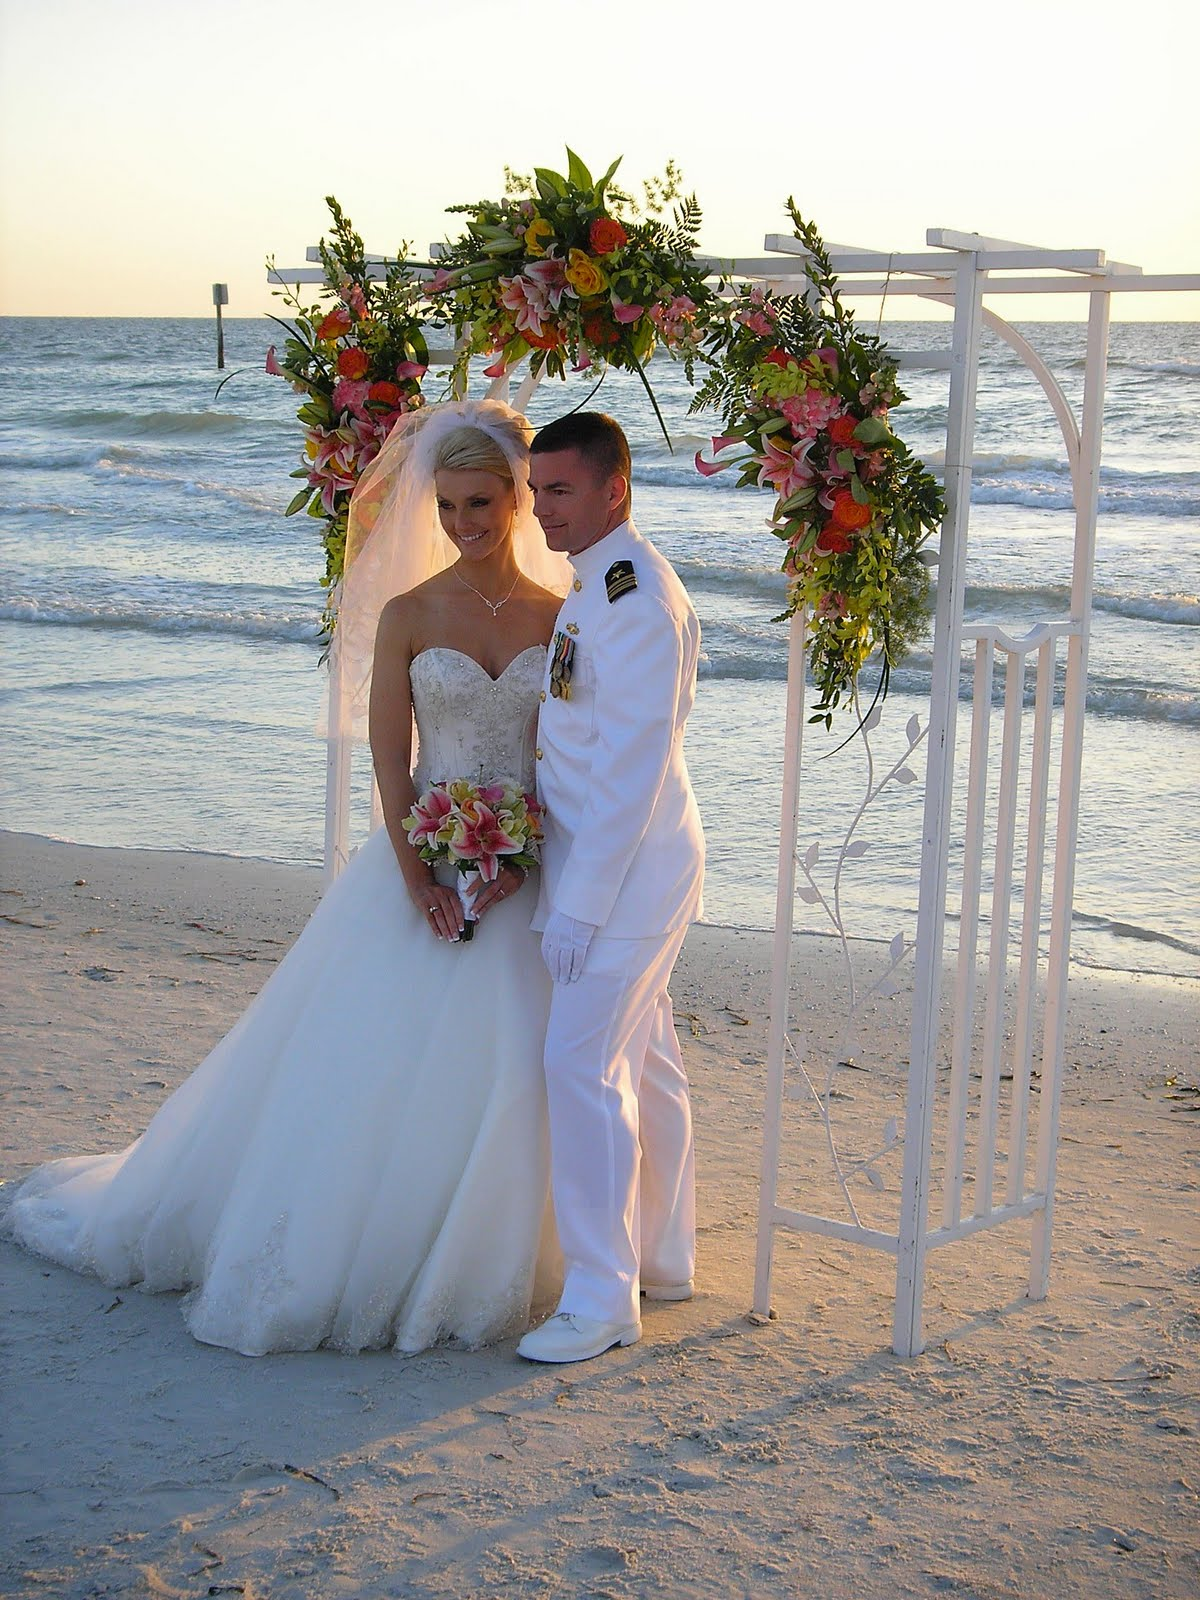 hilton clearwater beach flowers less better weddings organizing ceremony moving perfect